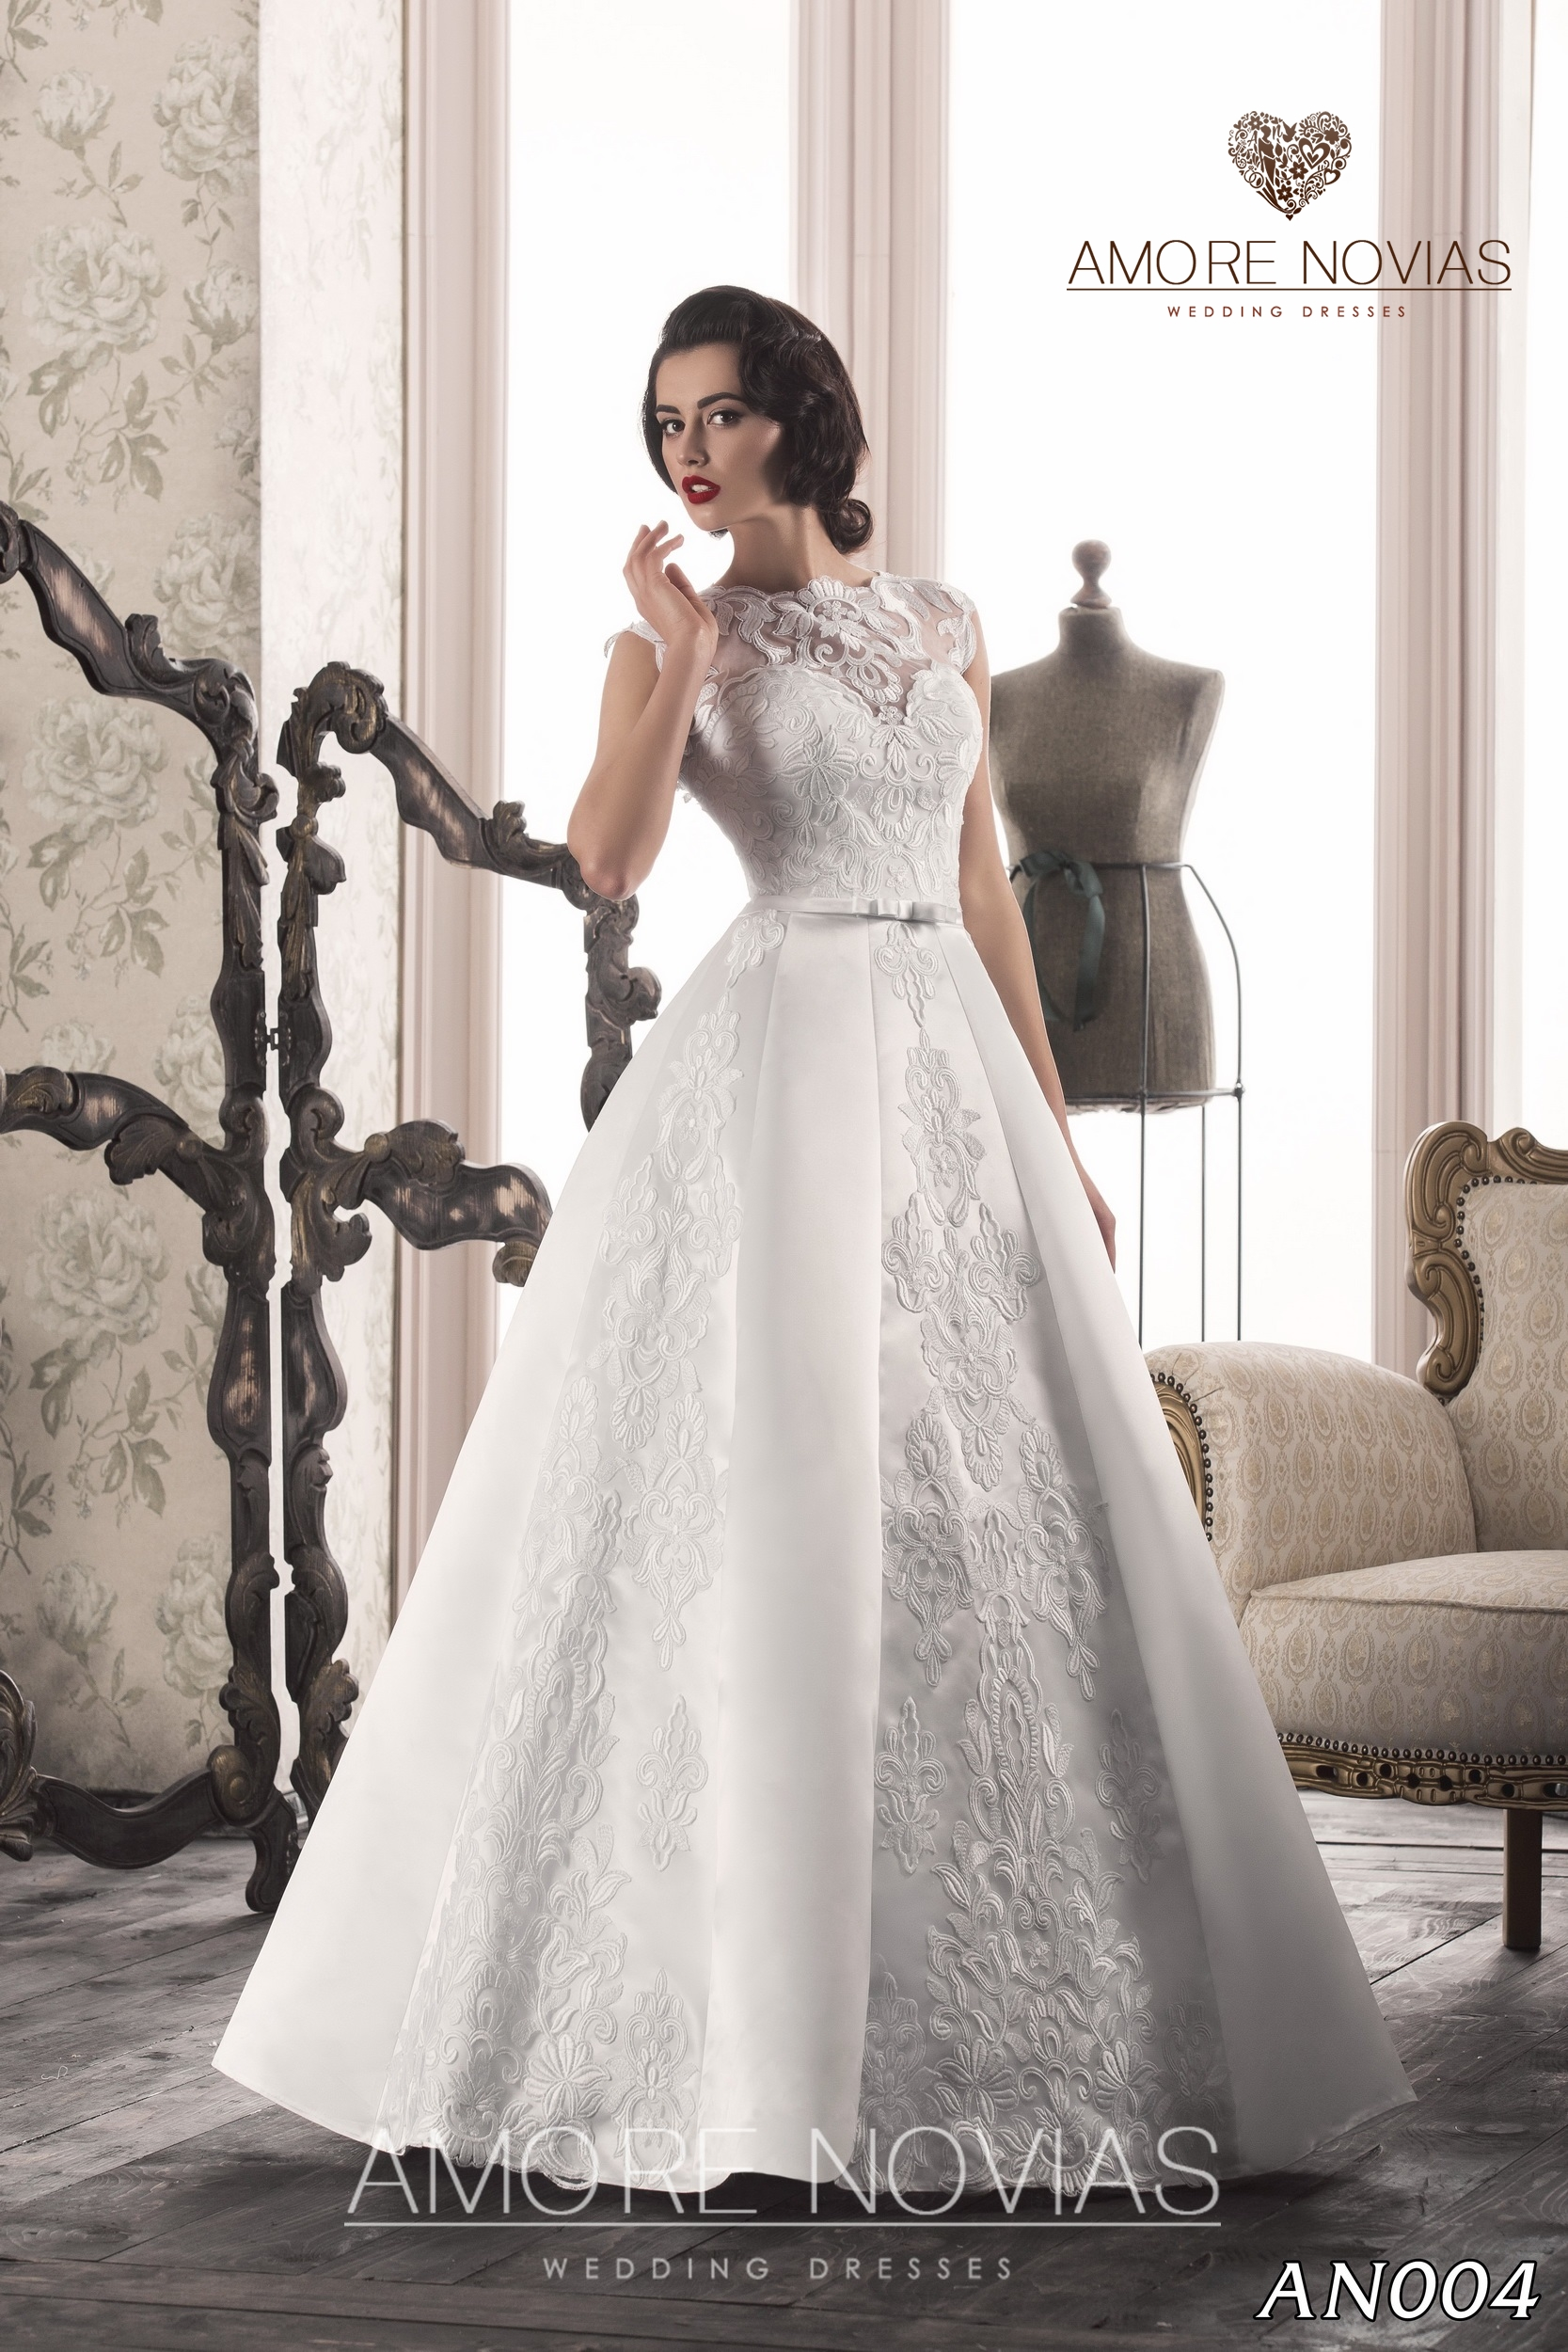 http://amore-novias.com/images/stories/virtuemart/product/an004.jpg